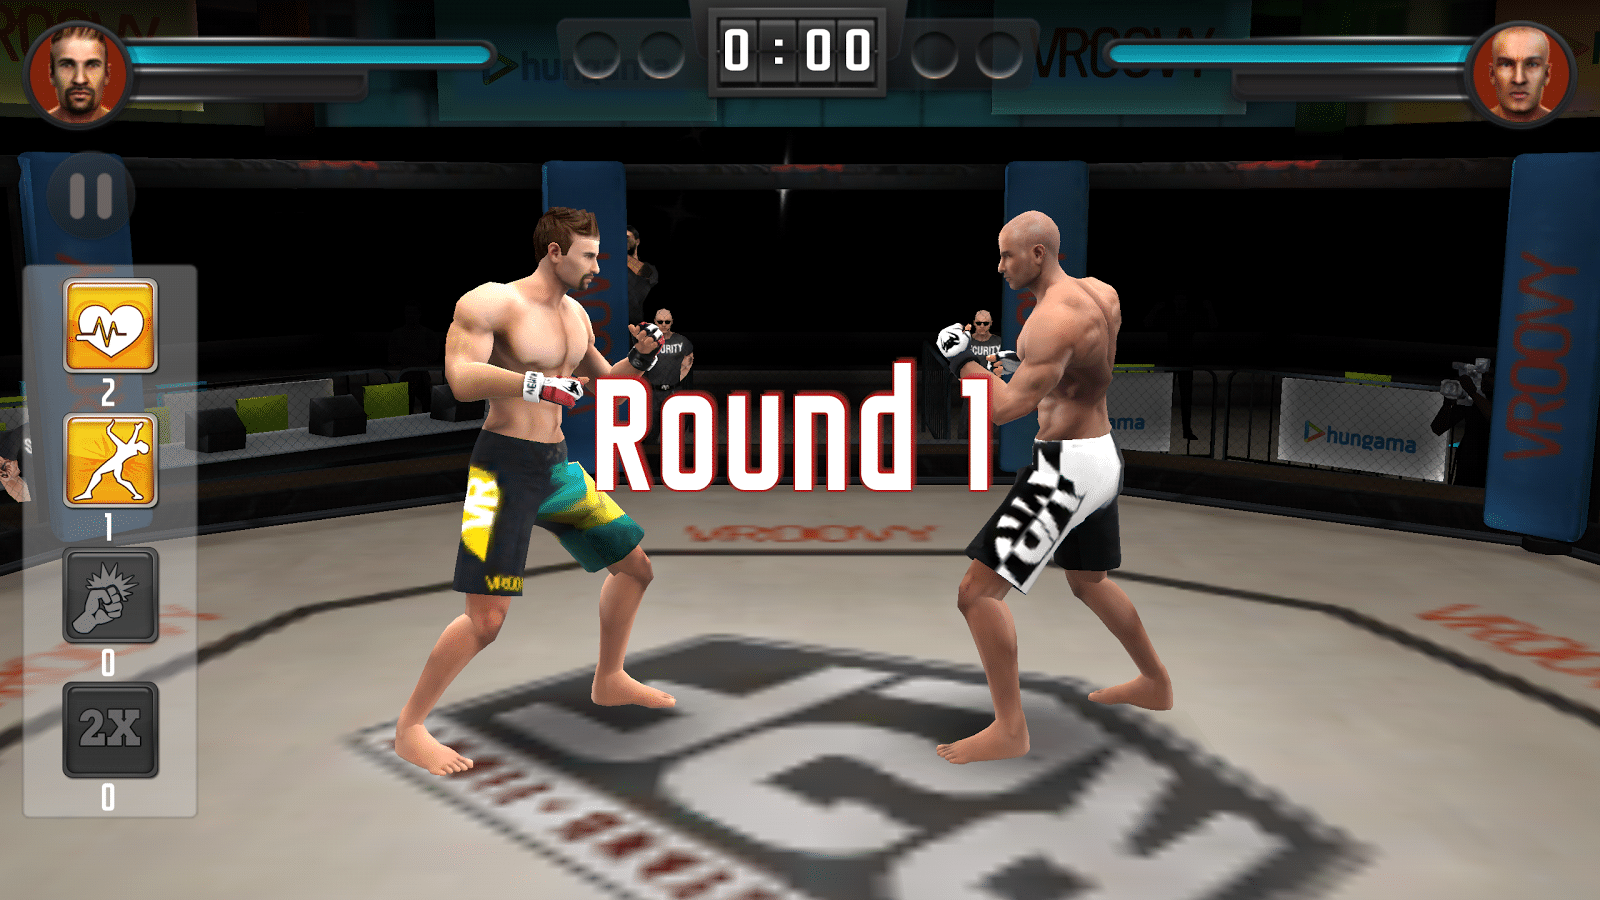 Clash of Fighters